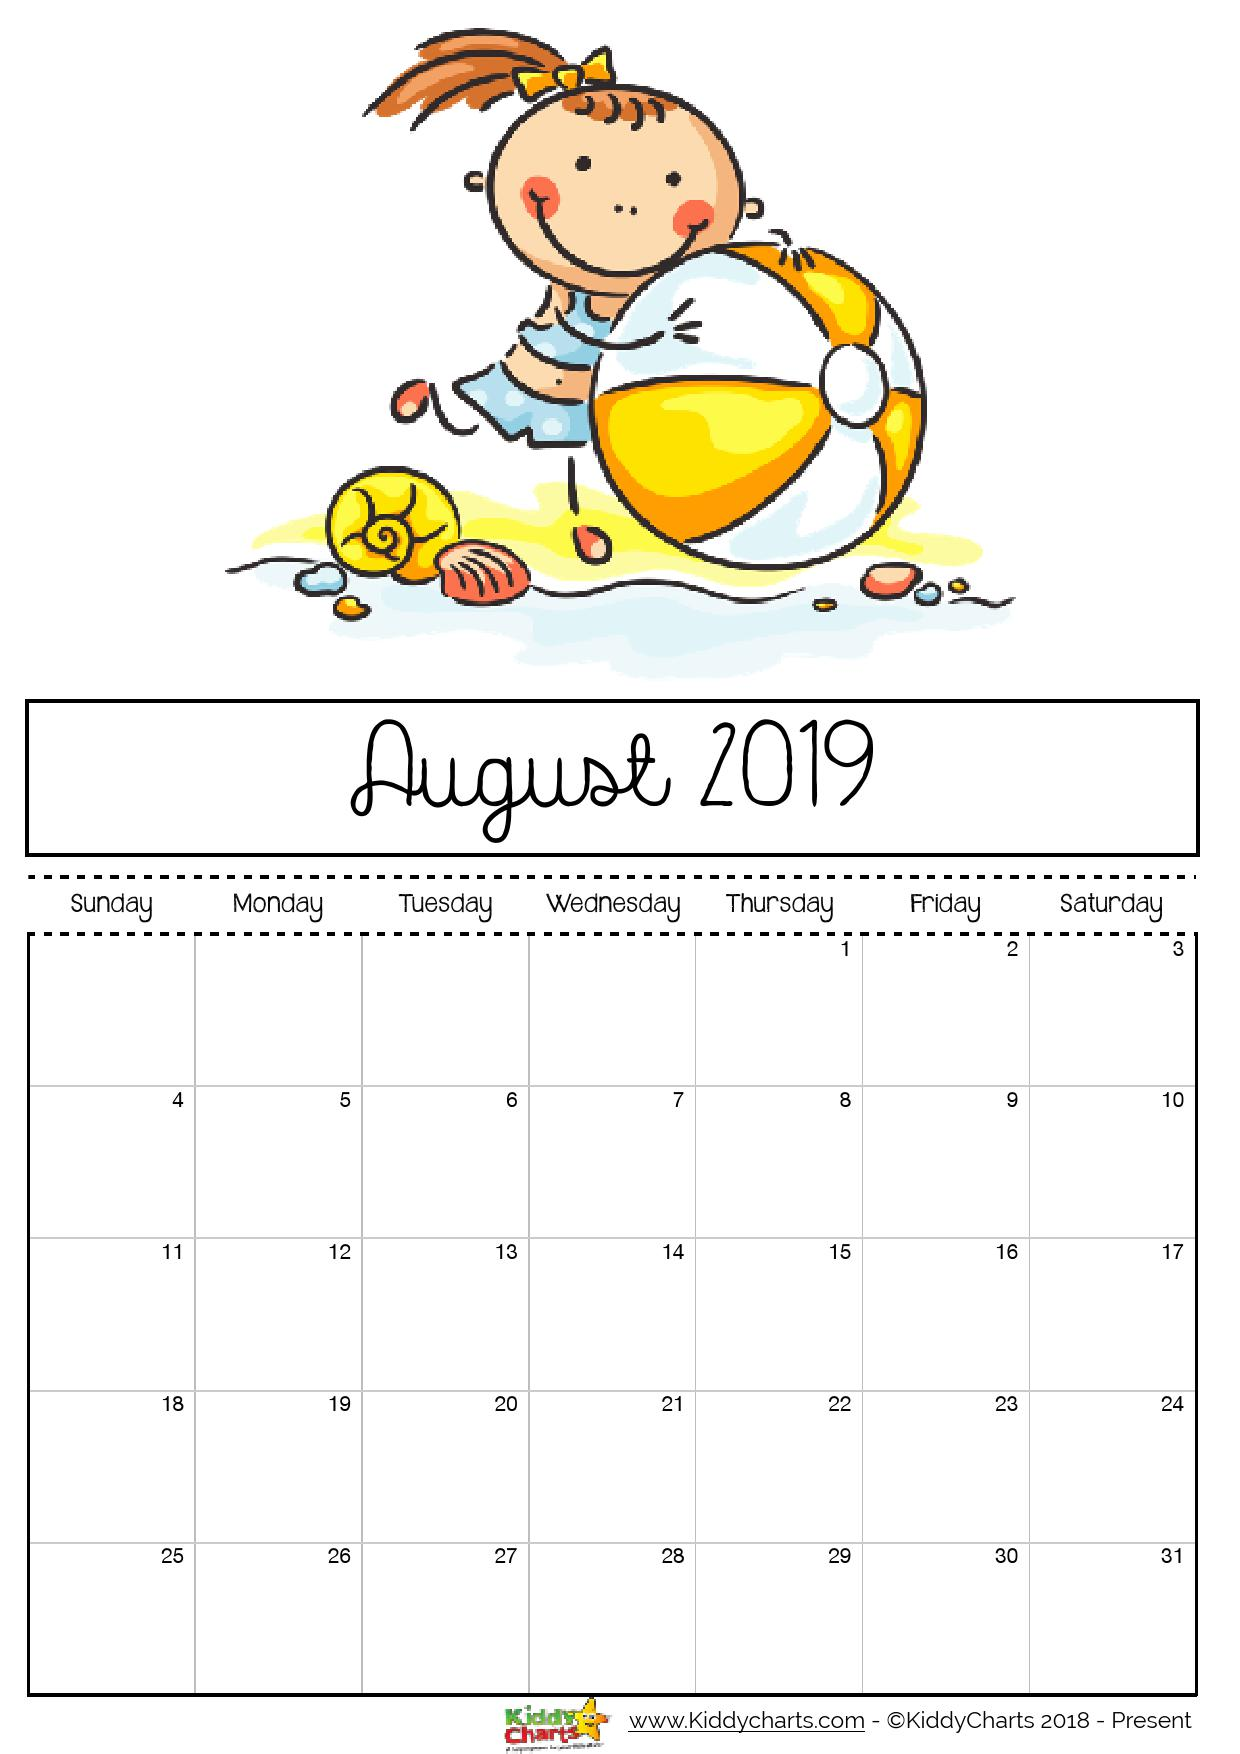 August printable 2019 calendar; little girl on the beach with a beach ball. We hope you manage to get to the beach too in 2019! #printables #kidsprintables #2019calendar